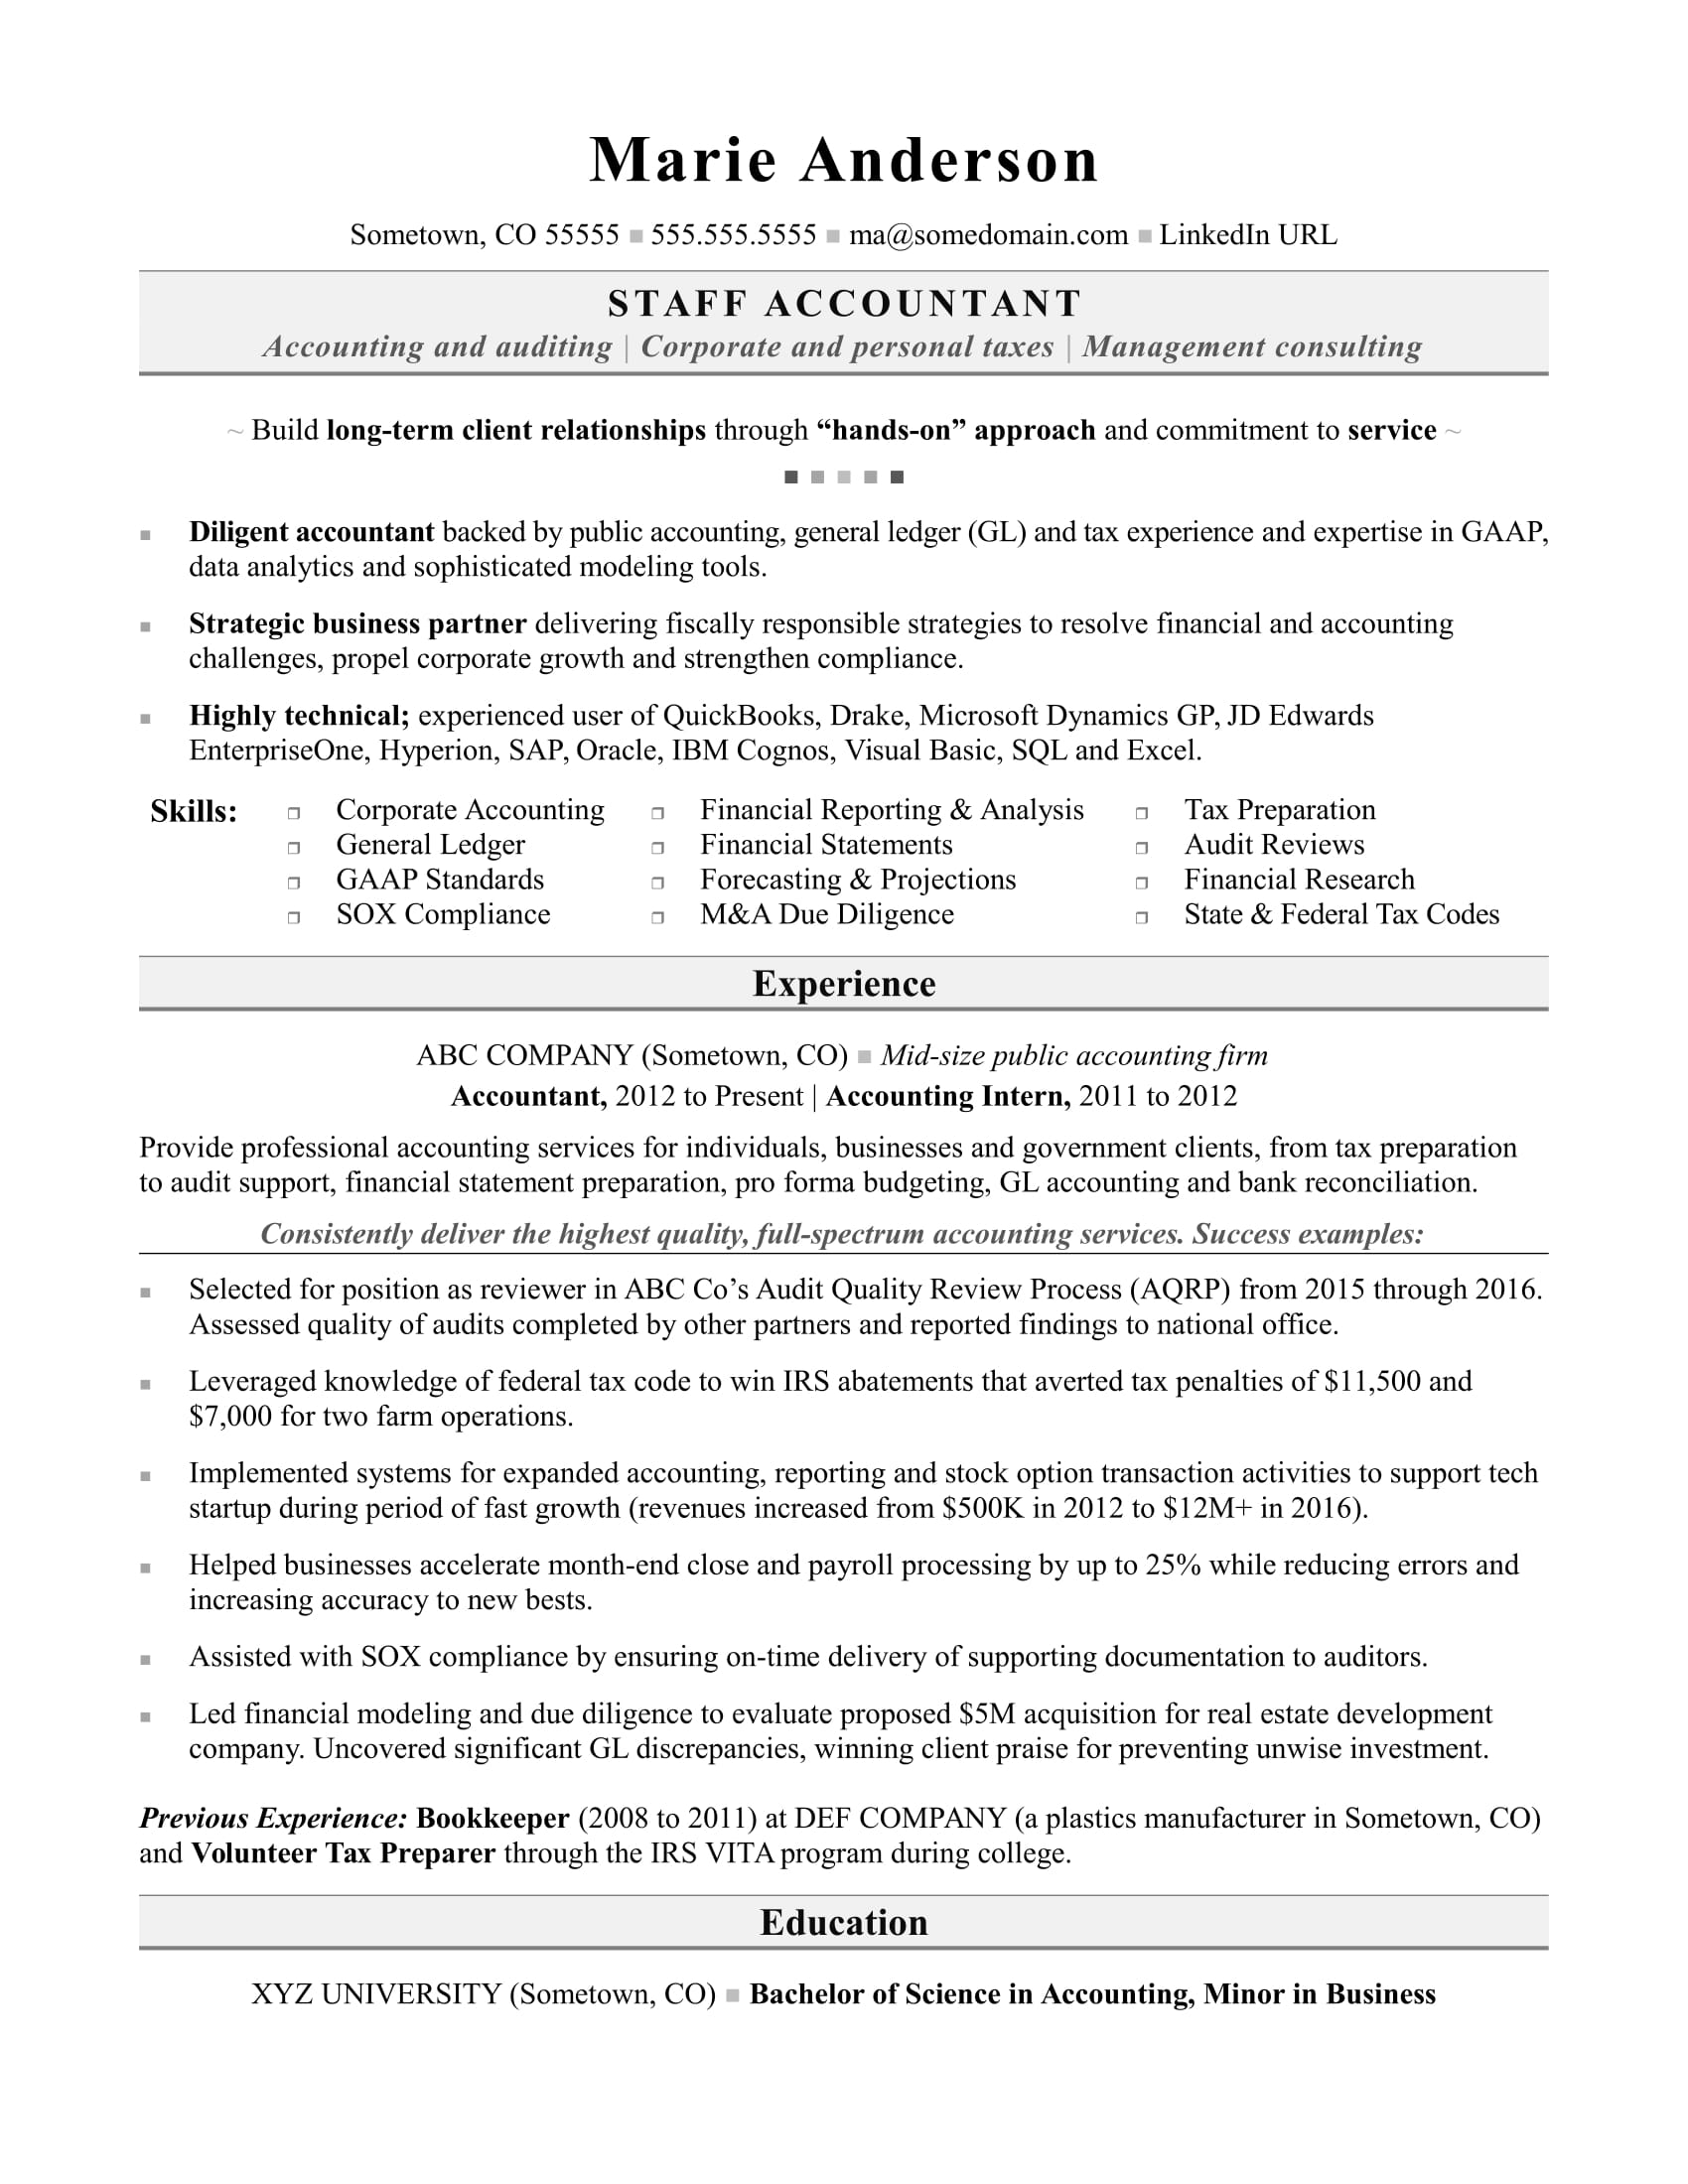 resume samples for accounting - Accountant Resume Sample Word